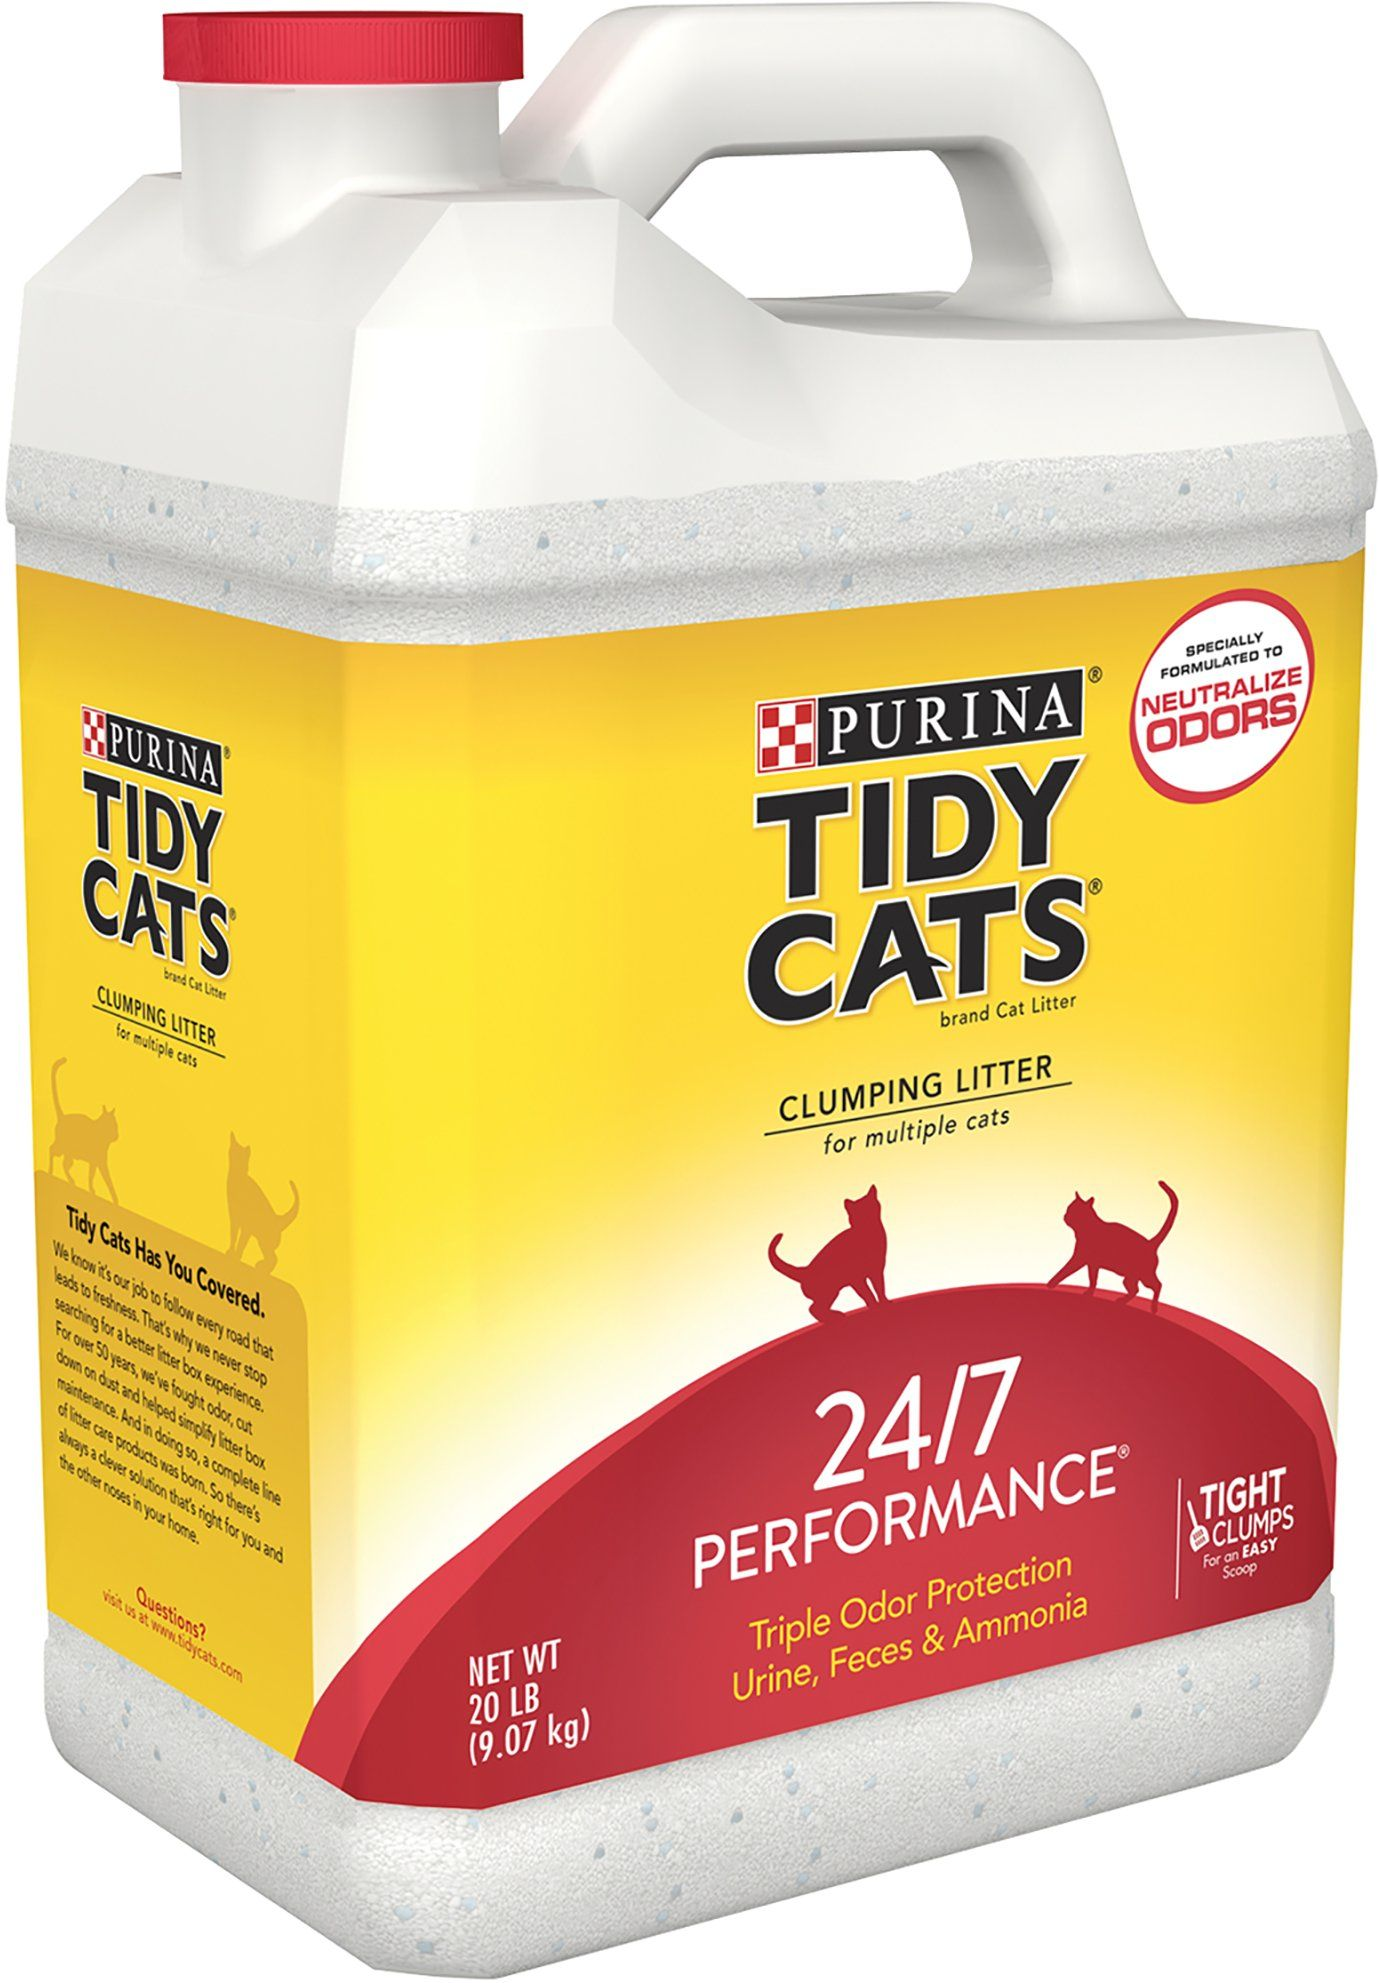 Purina Tidy Cats Clumping 24/7 Performance Multi Cat